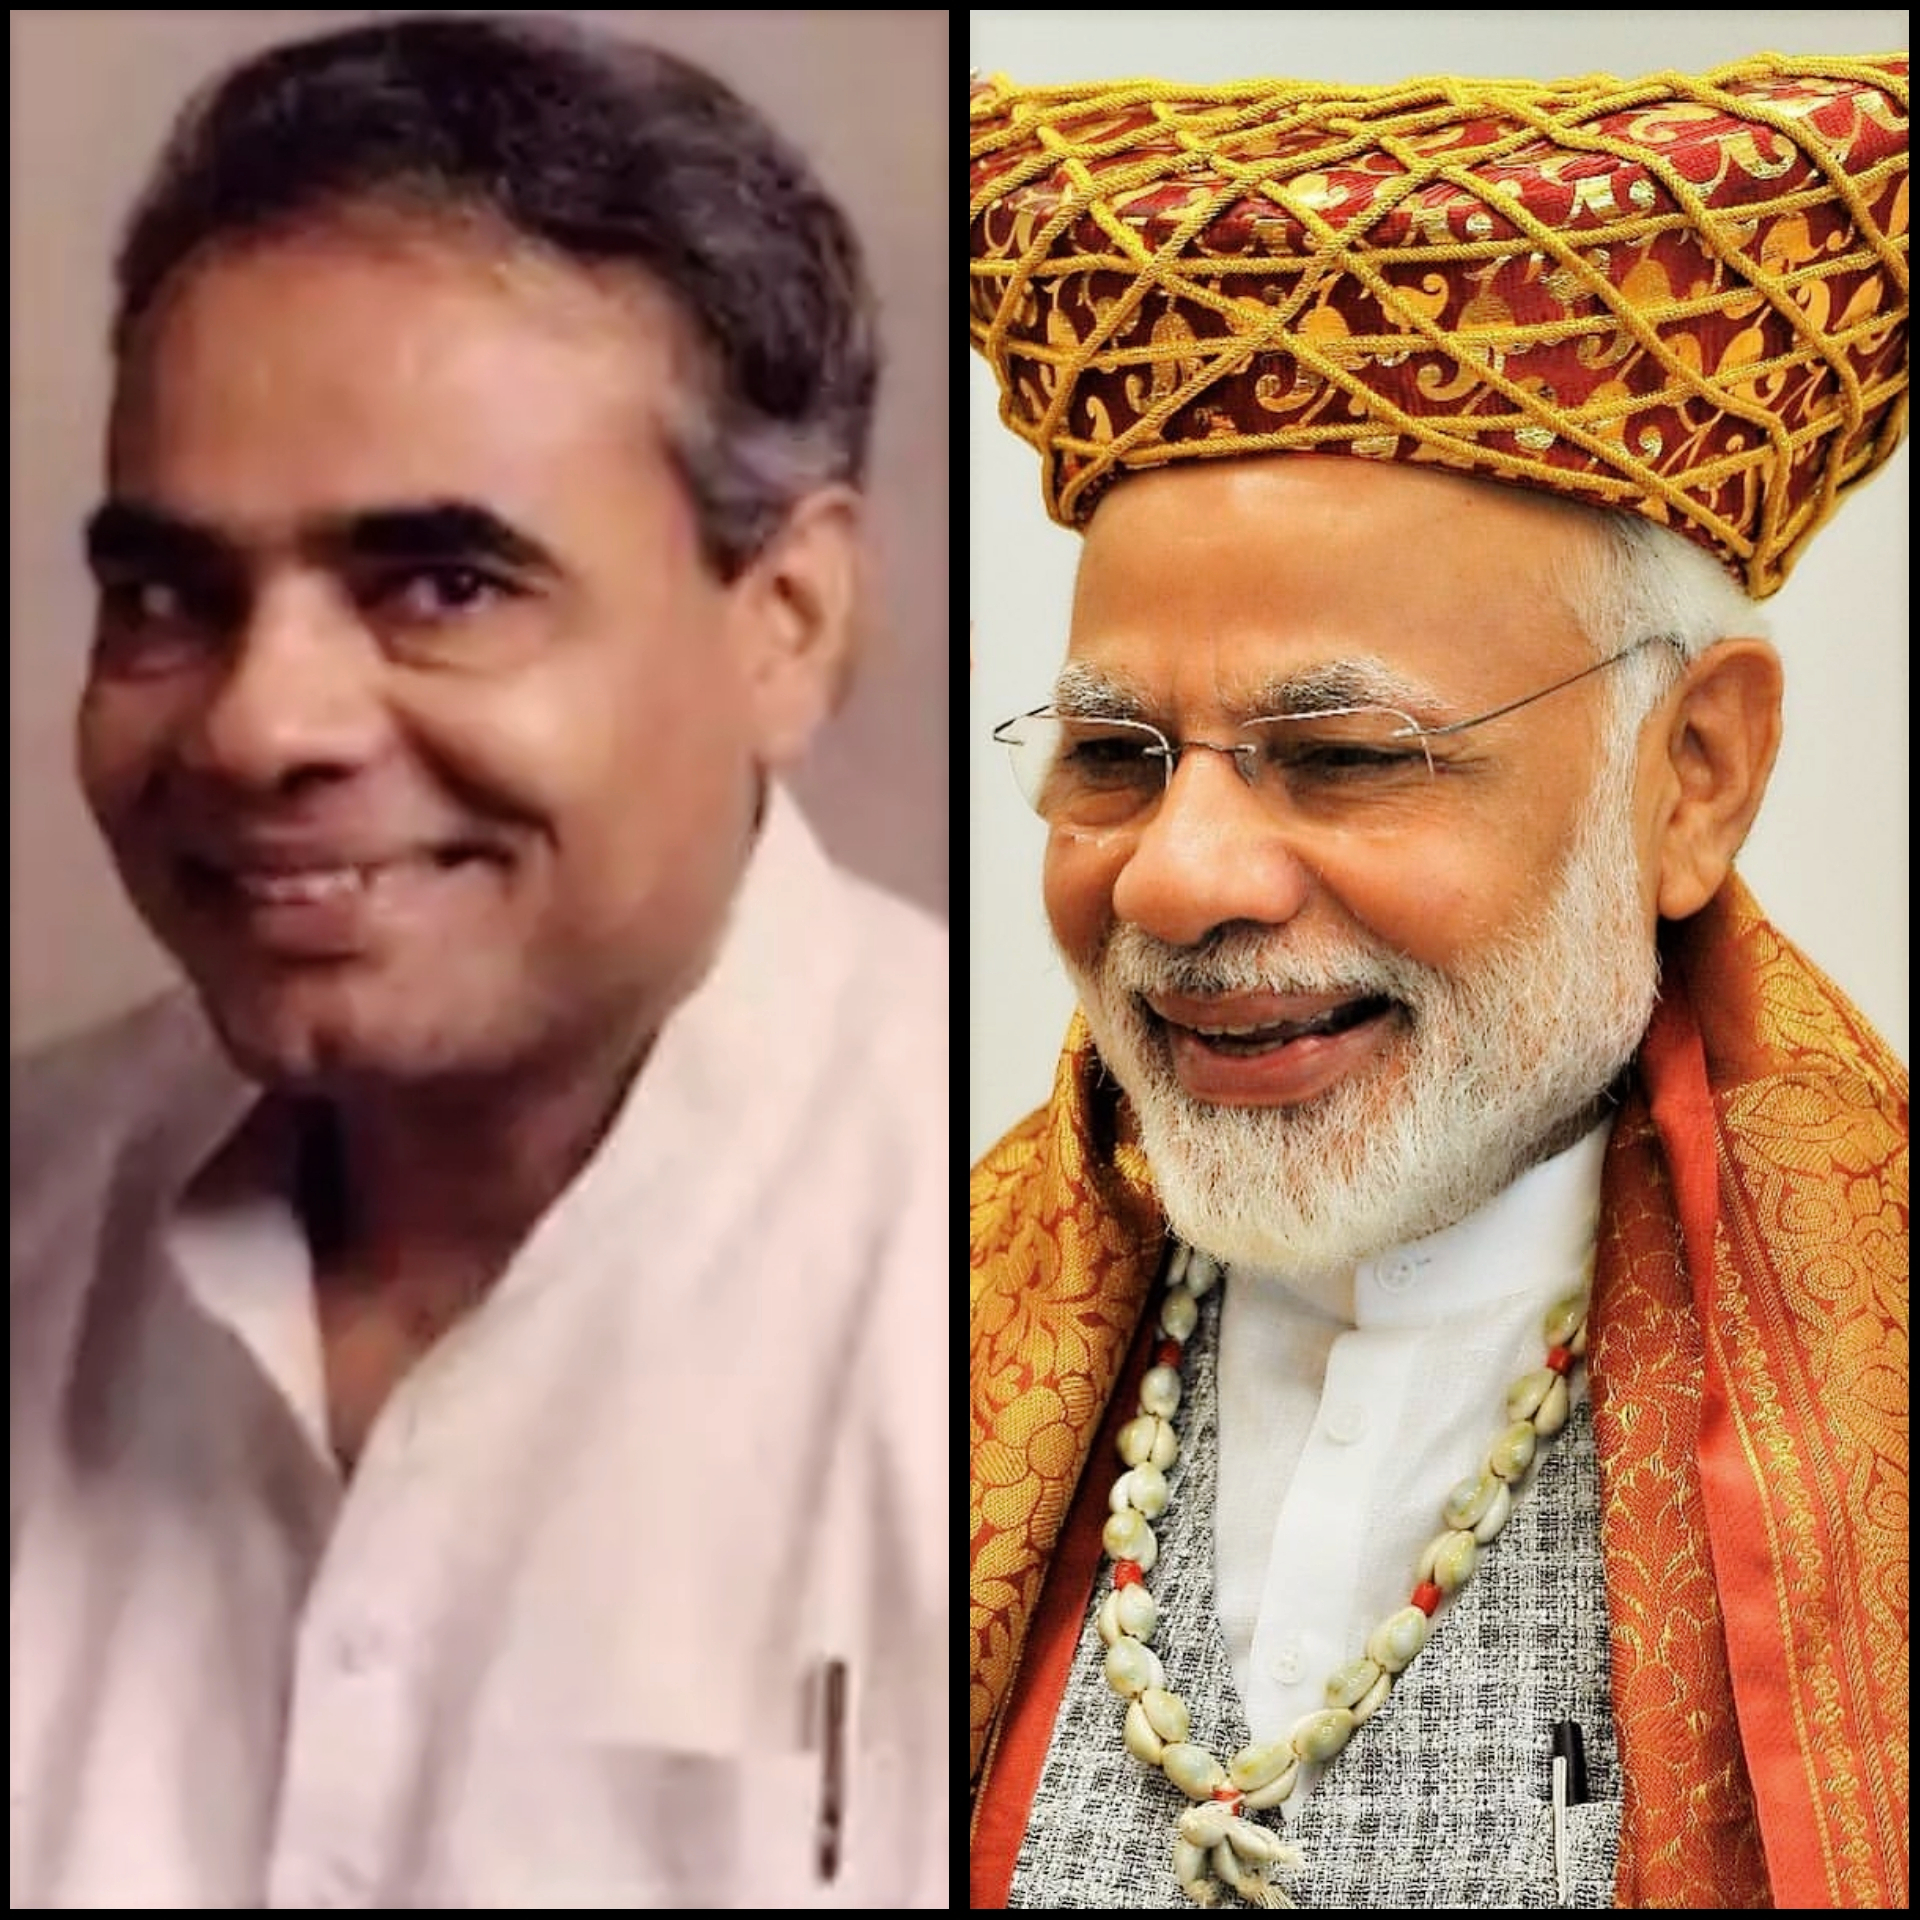 narendra modi, Indian Politicians, politics, unseen pictures, rare pictures,vintage pictures of Indian Politicians